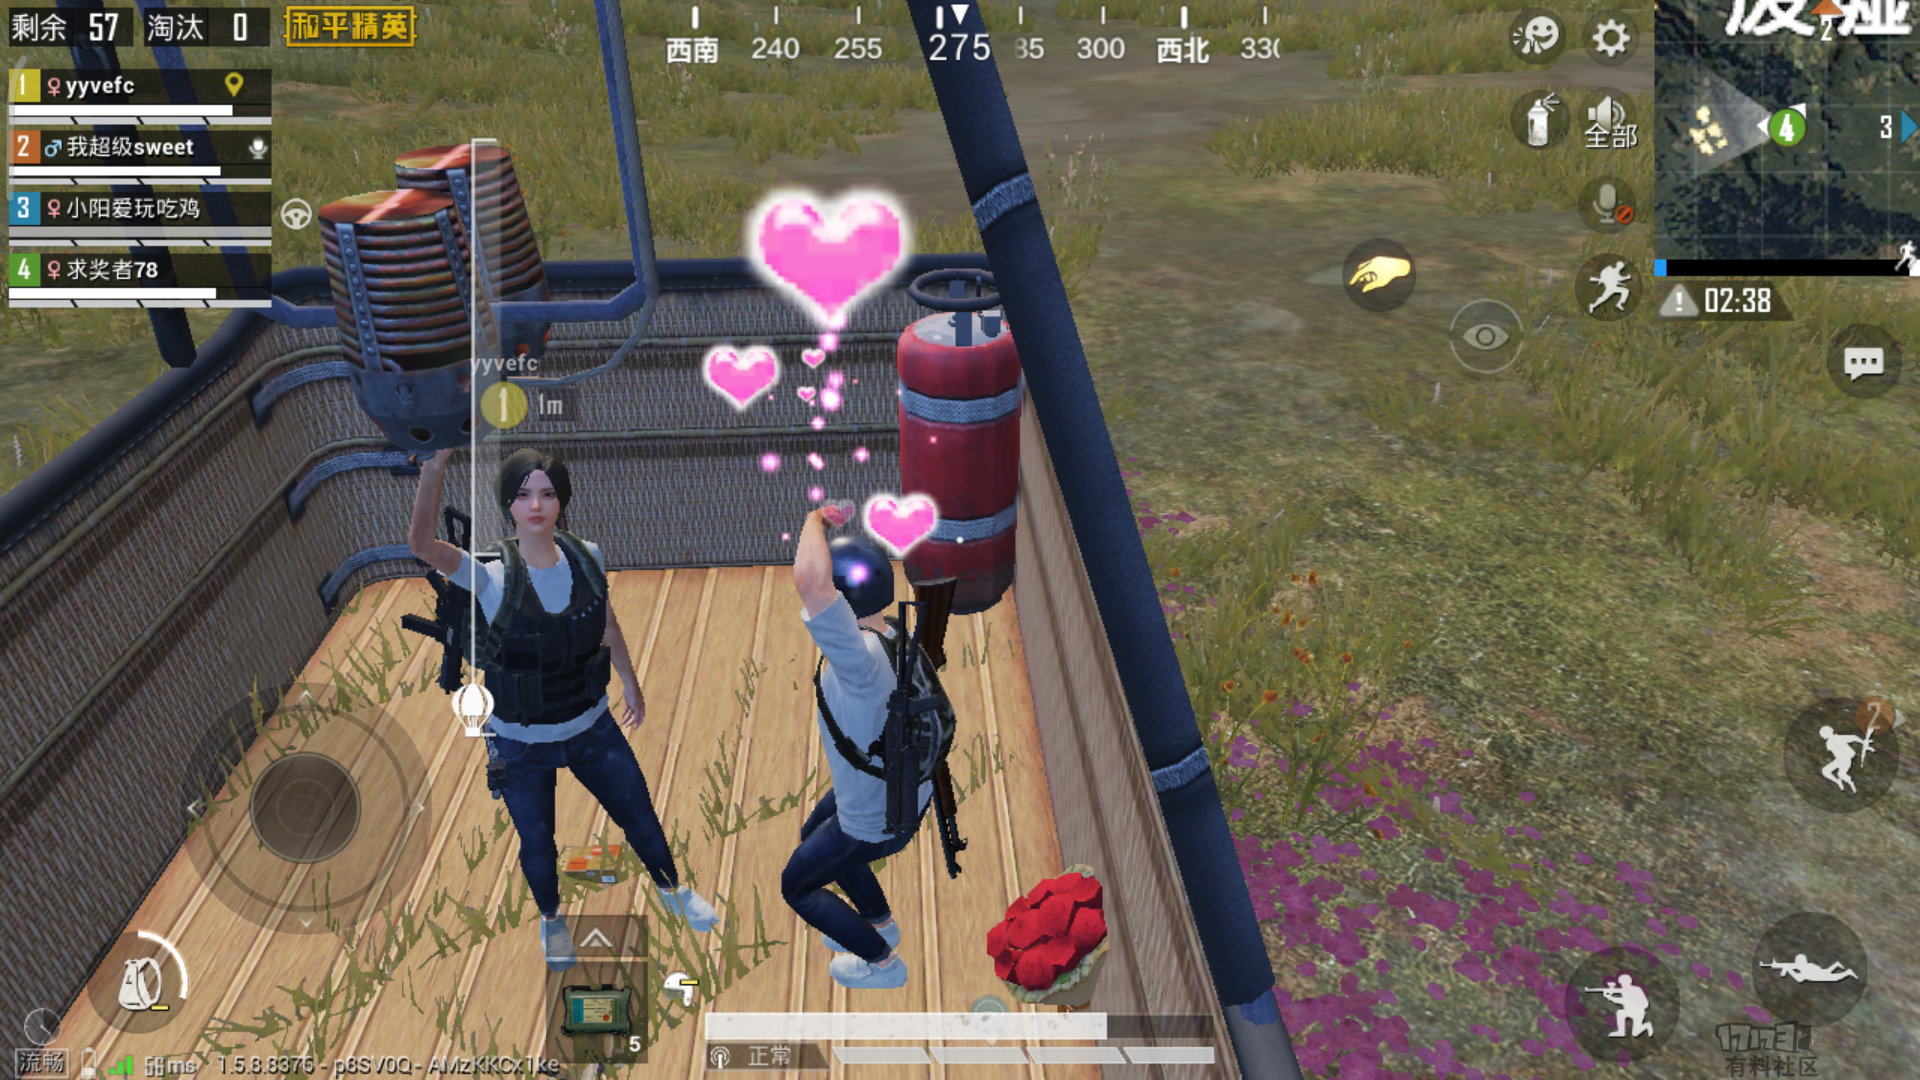 Screenshot_2020-02-12-08-49-30-318_com.tencent.tmgp.pubgmhd.png